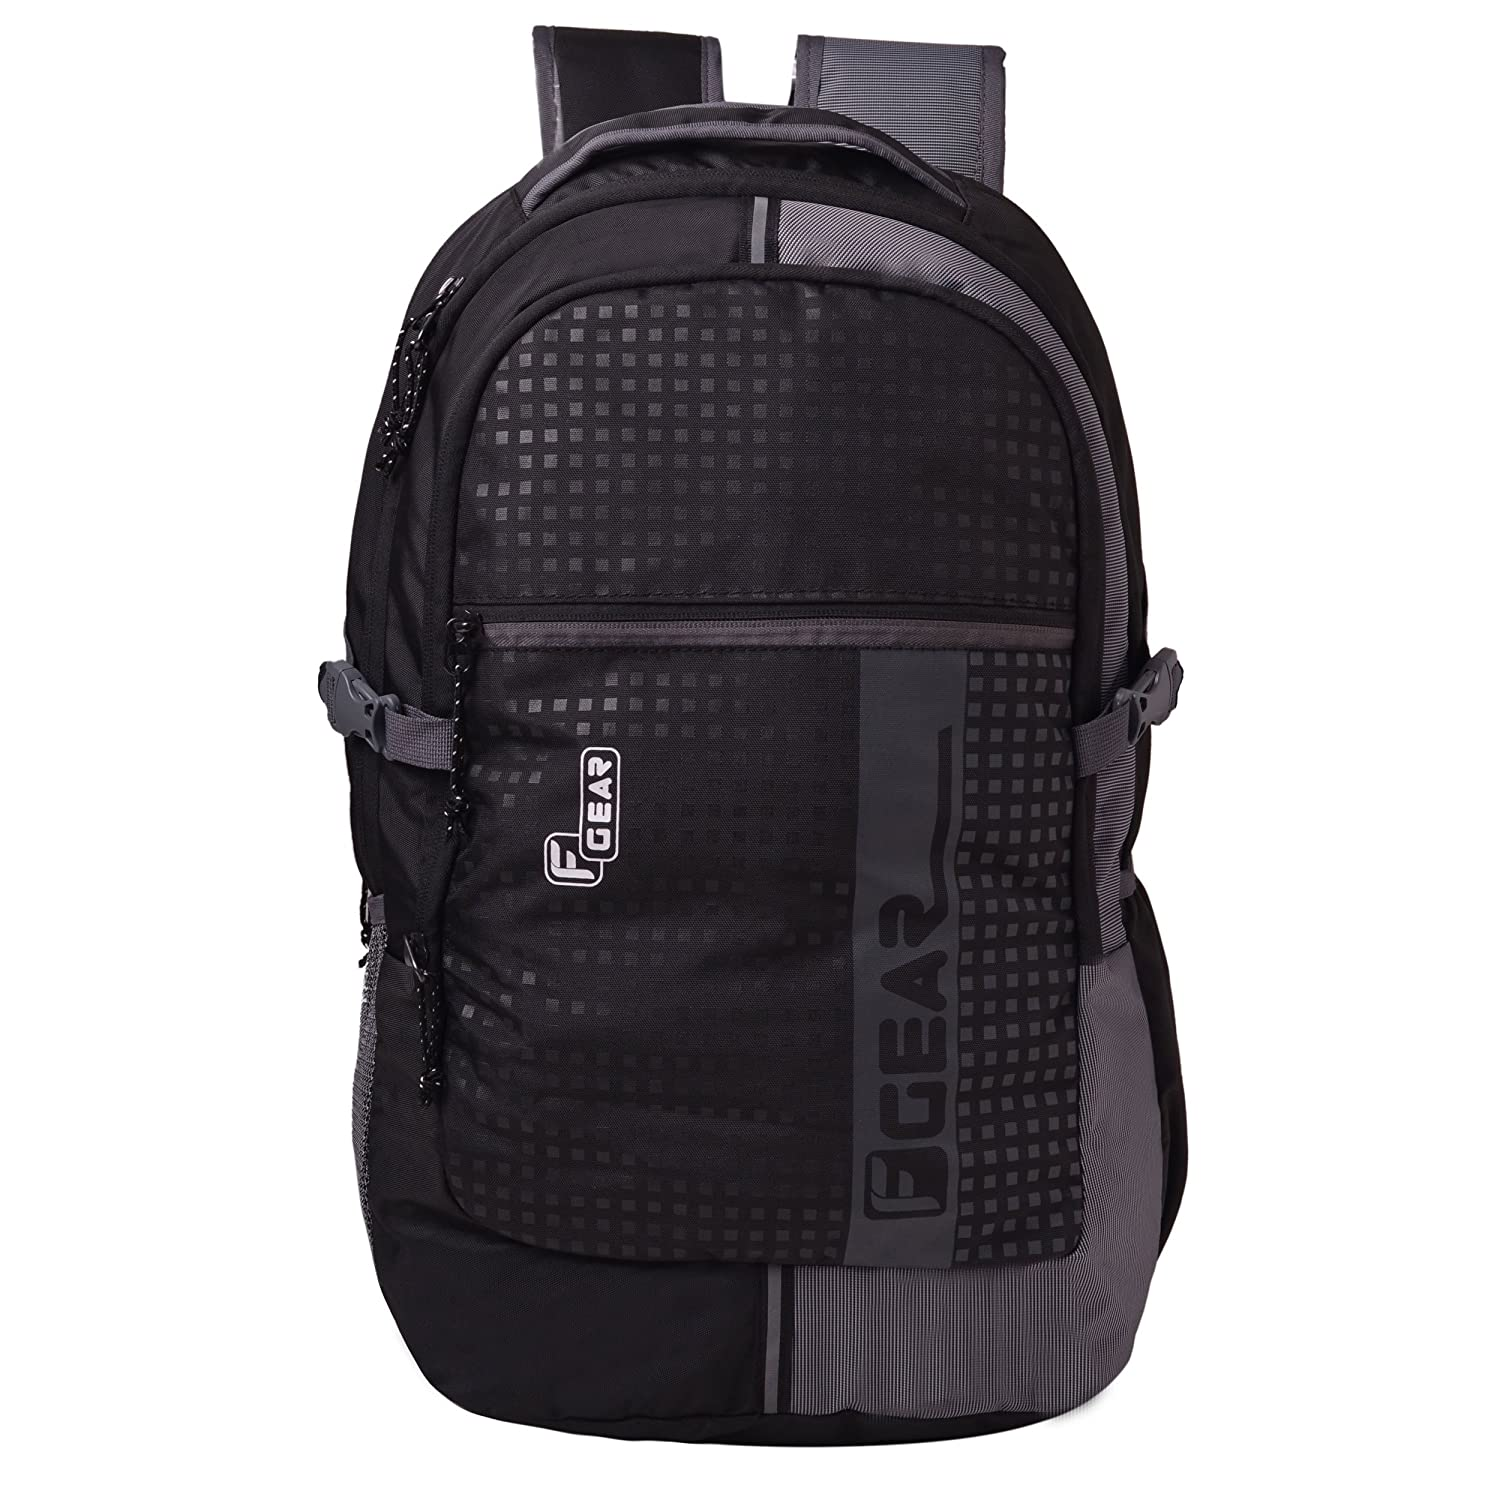 F Gear Blow Laptop Backpack 32 Liters (Black,Grey)